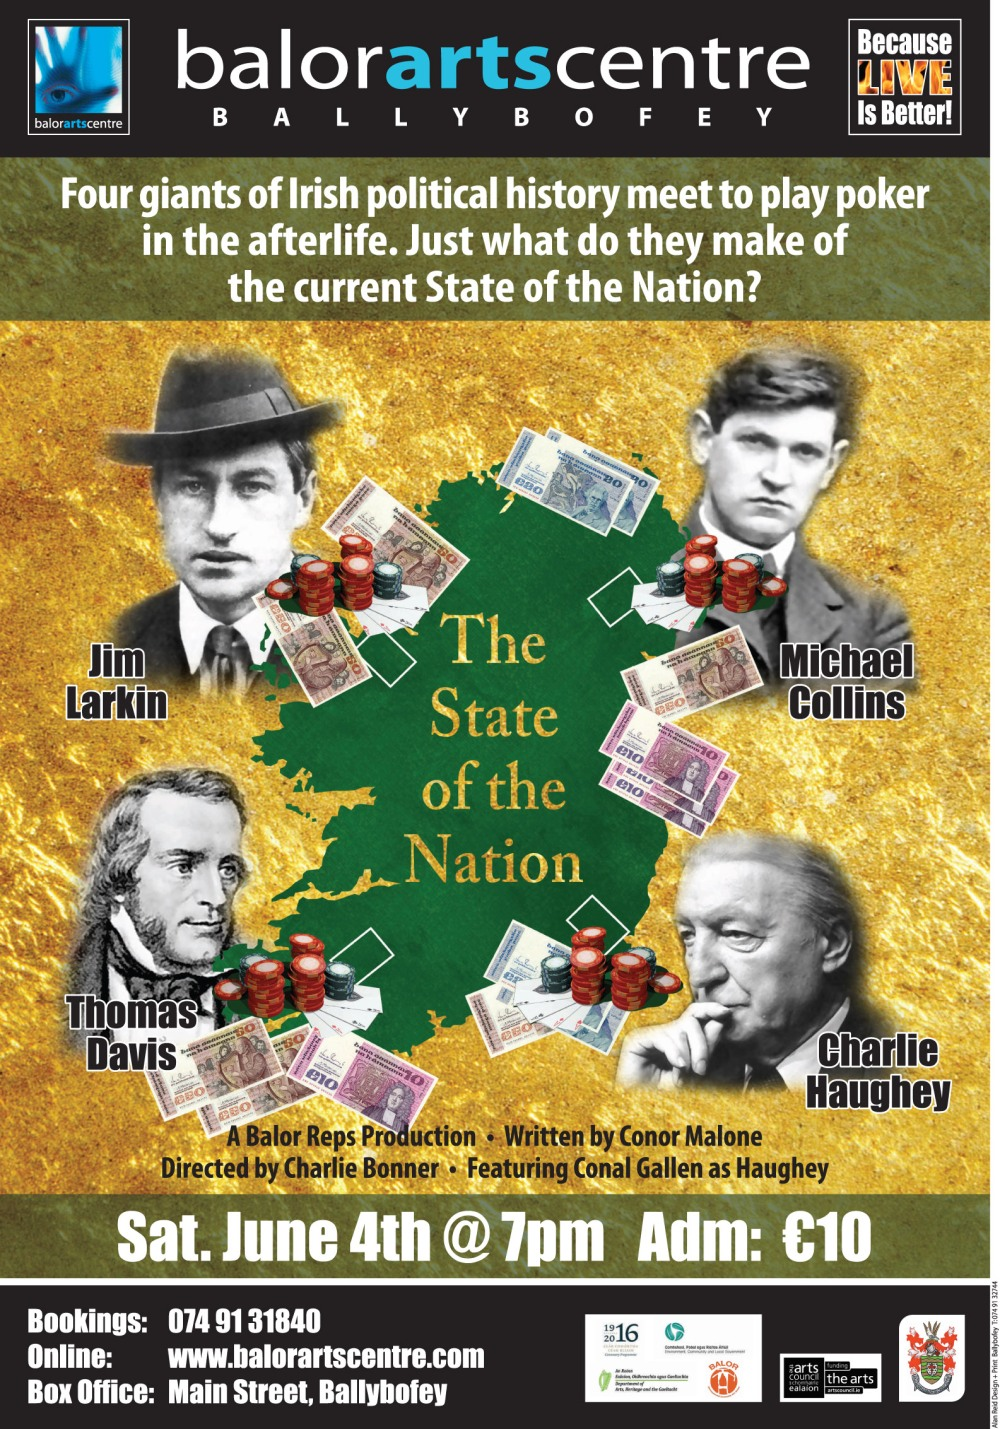 2-the-state-of-the-nation